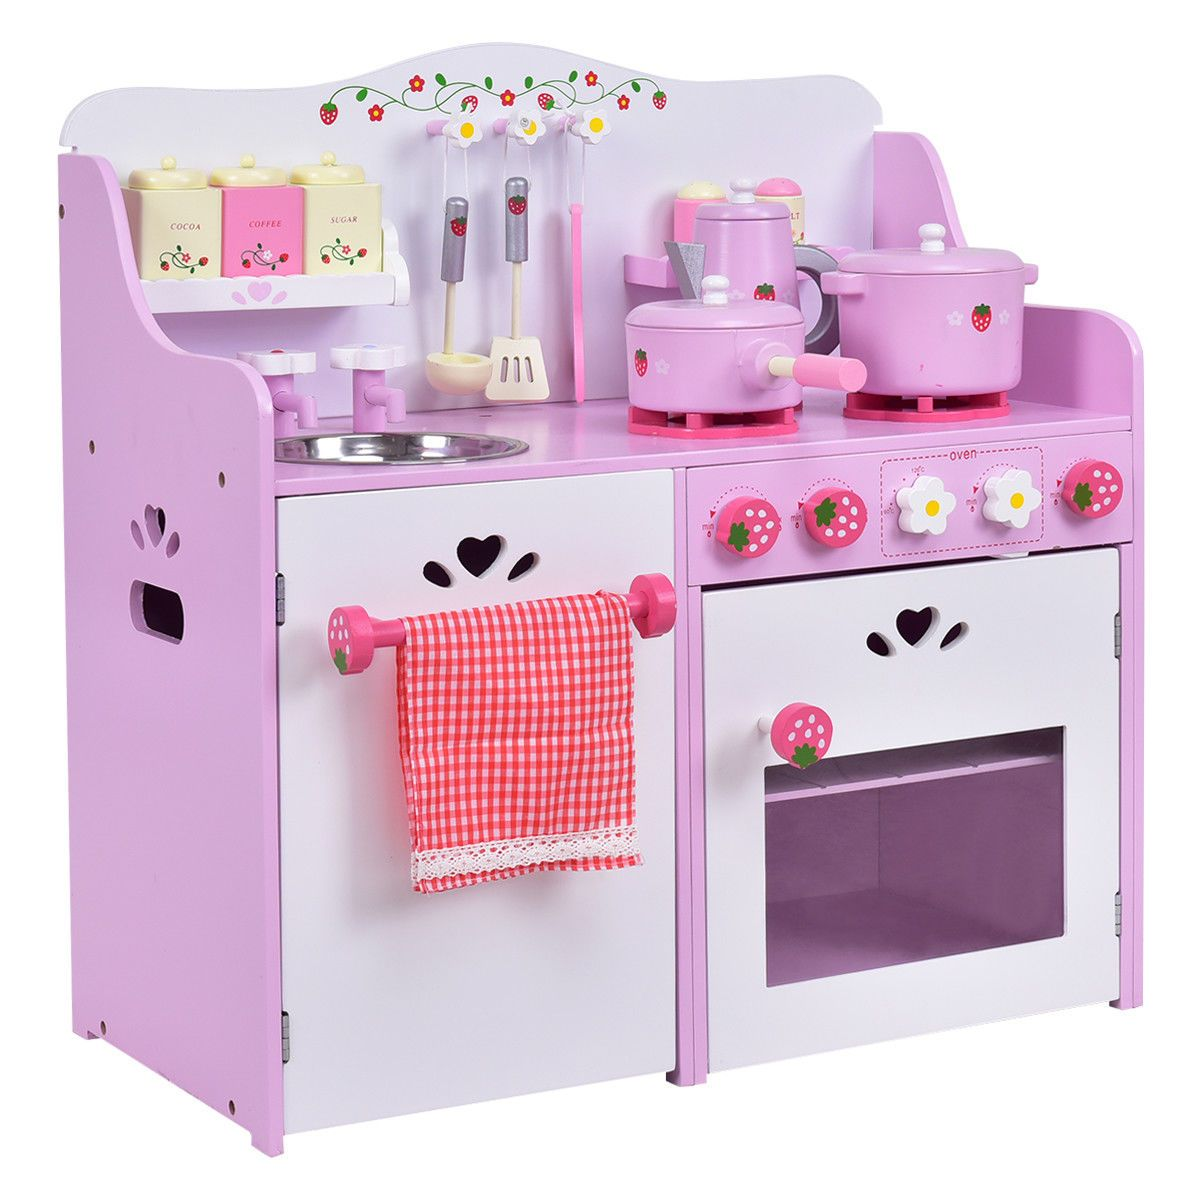 70 Inspirational Diy Ideas For Kids Pallet Mud Kitchens Diy Play